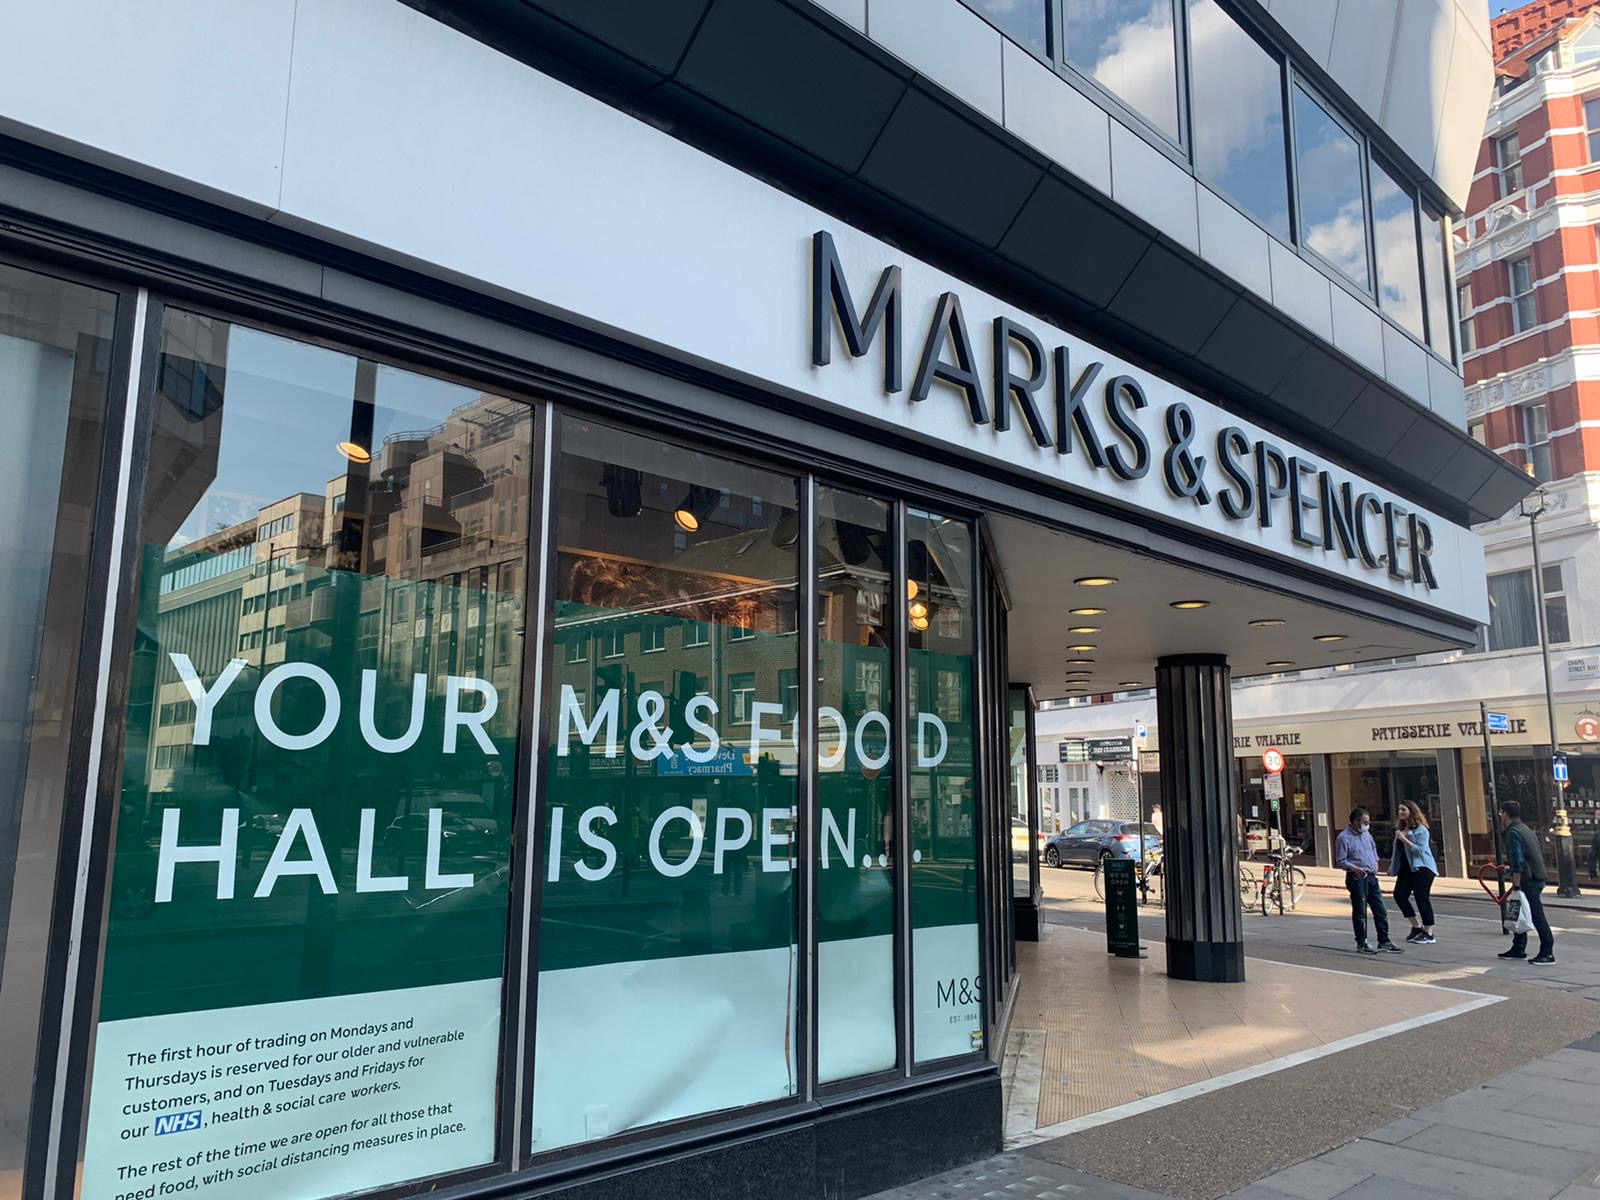 M&S Edgware Road